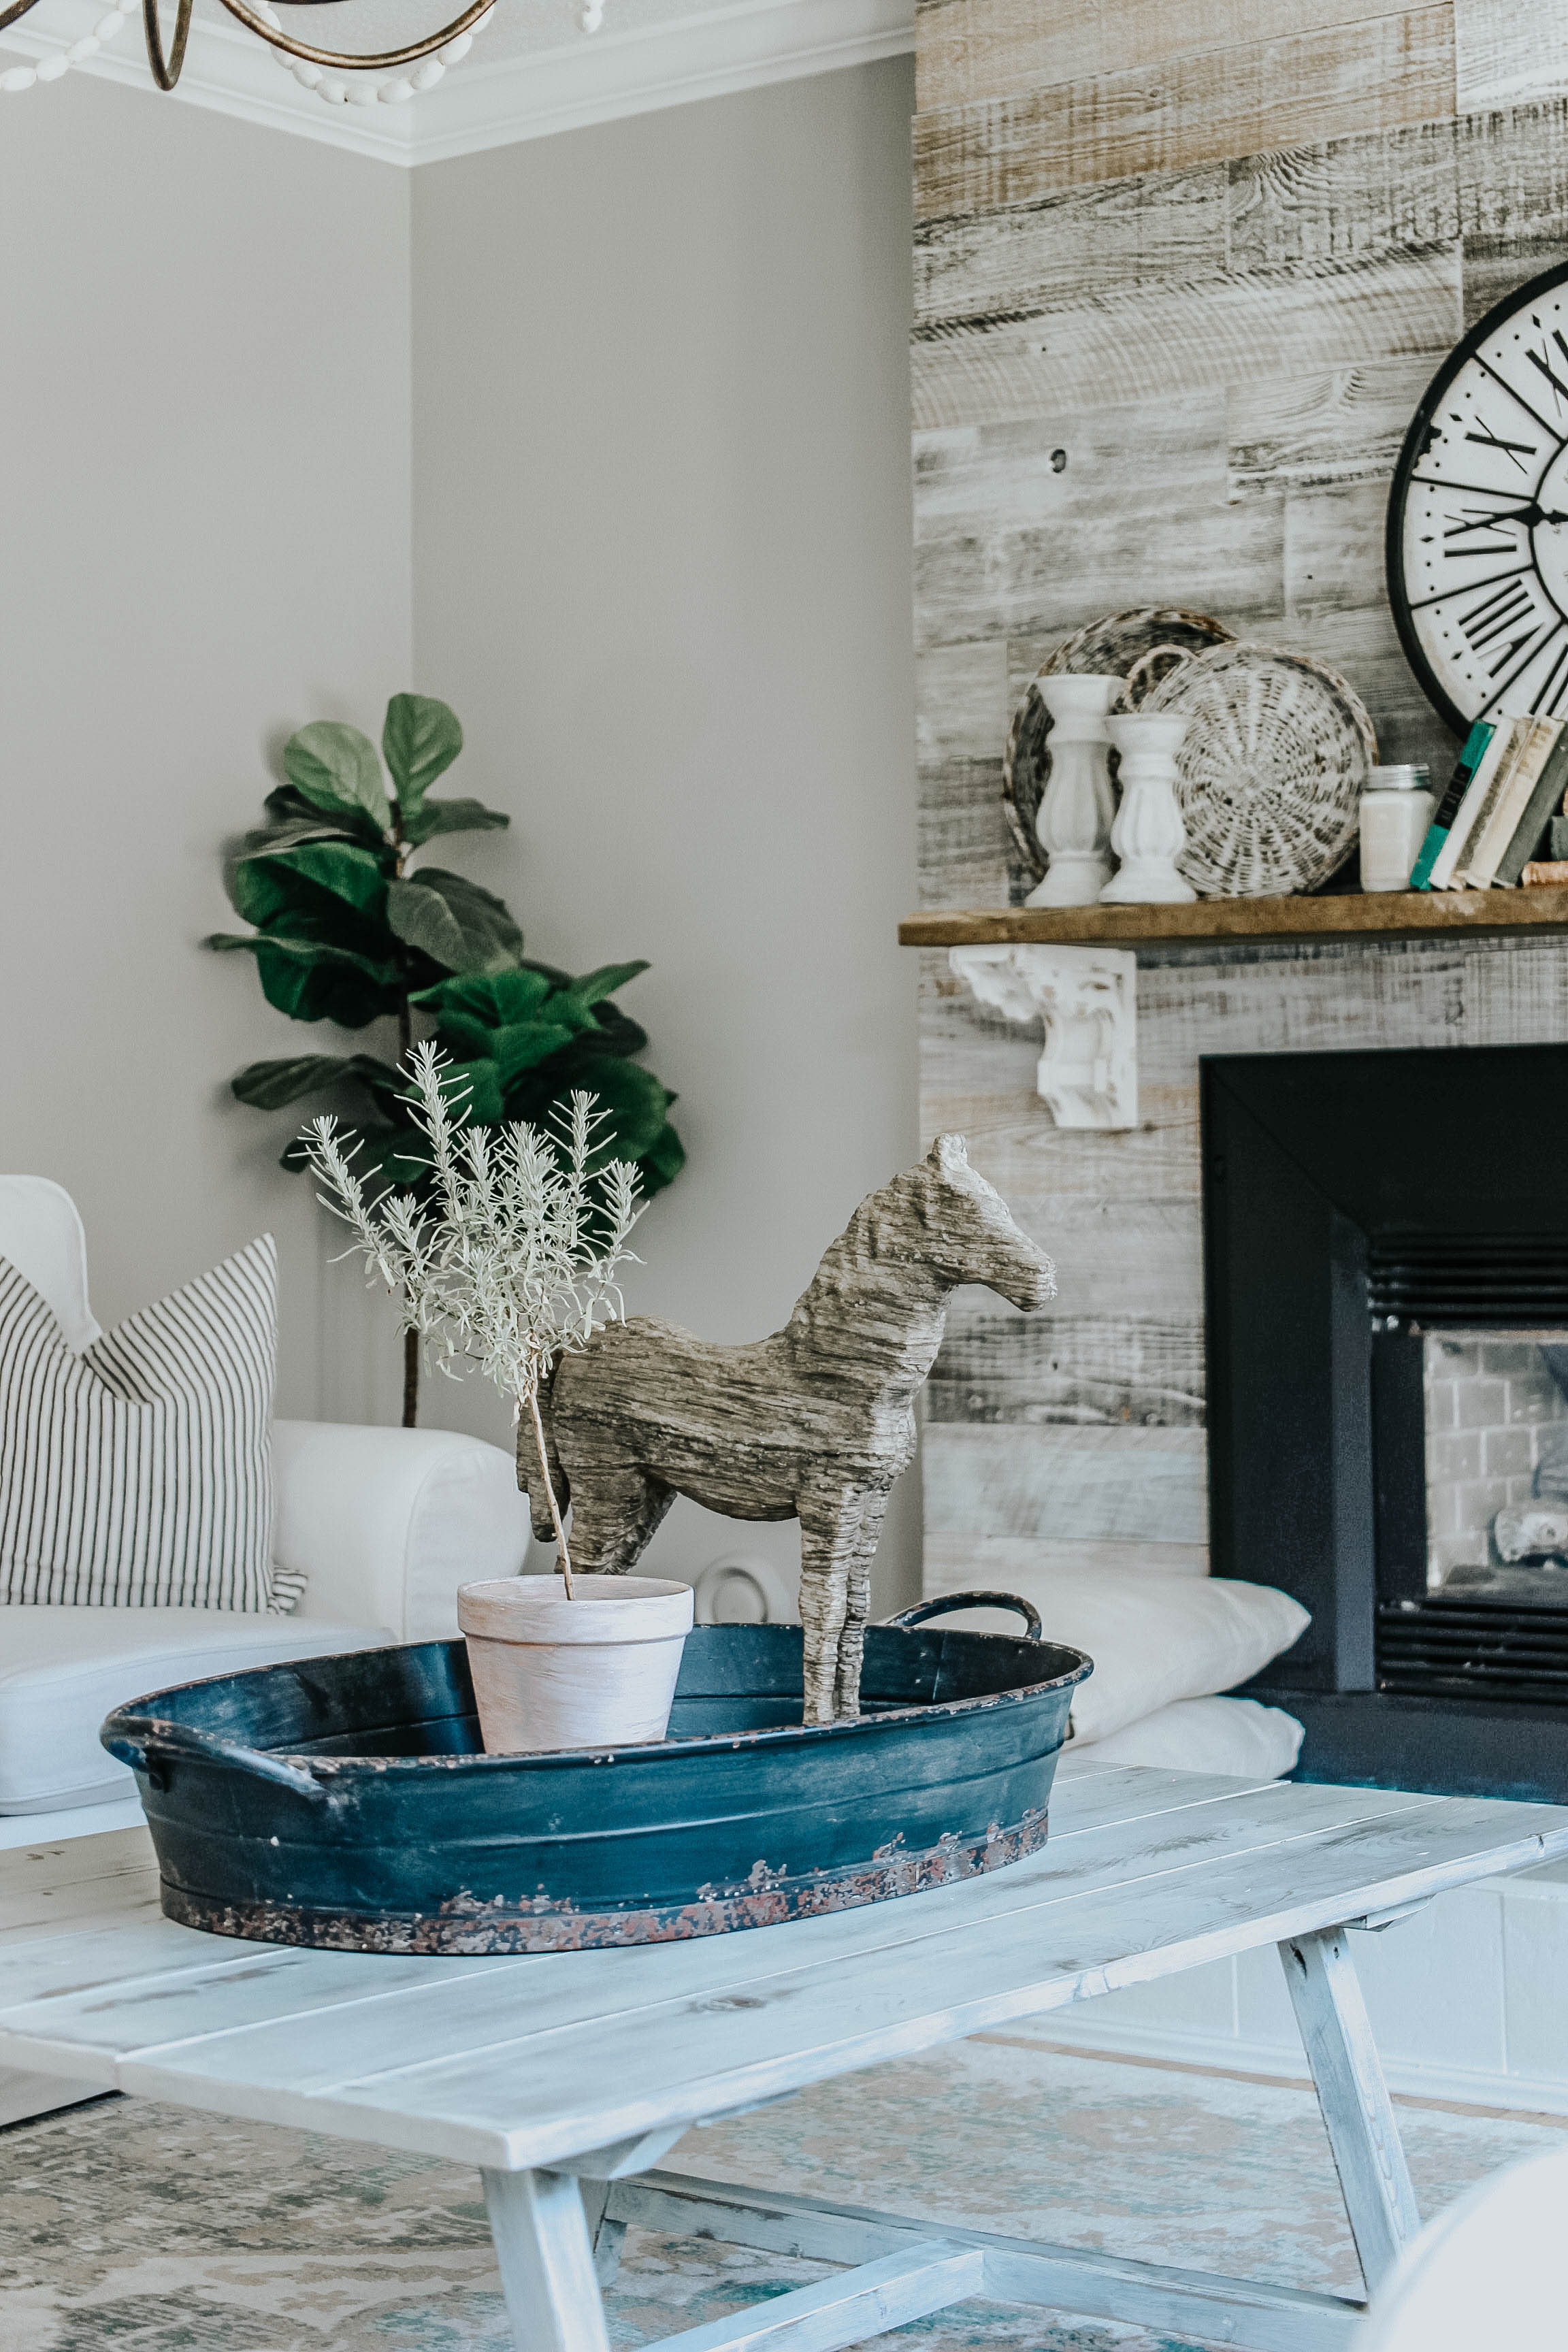 Modern Farmhouse Living Room and trying to find balance in everyday life. It's hard with four kids and being a stay at home mama. Featuring Campaign Living Chairs and Creative Co-op www.whitepicketfarmhouse.com